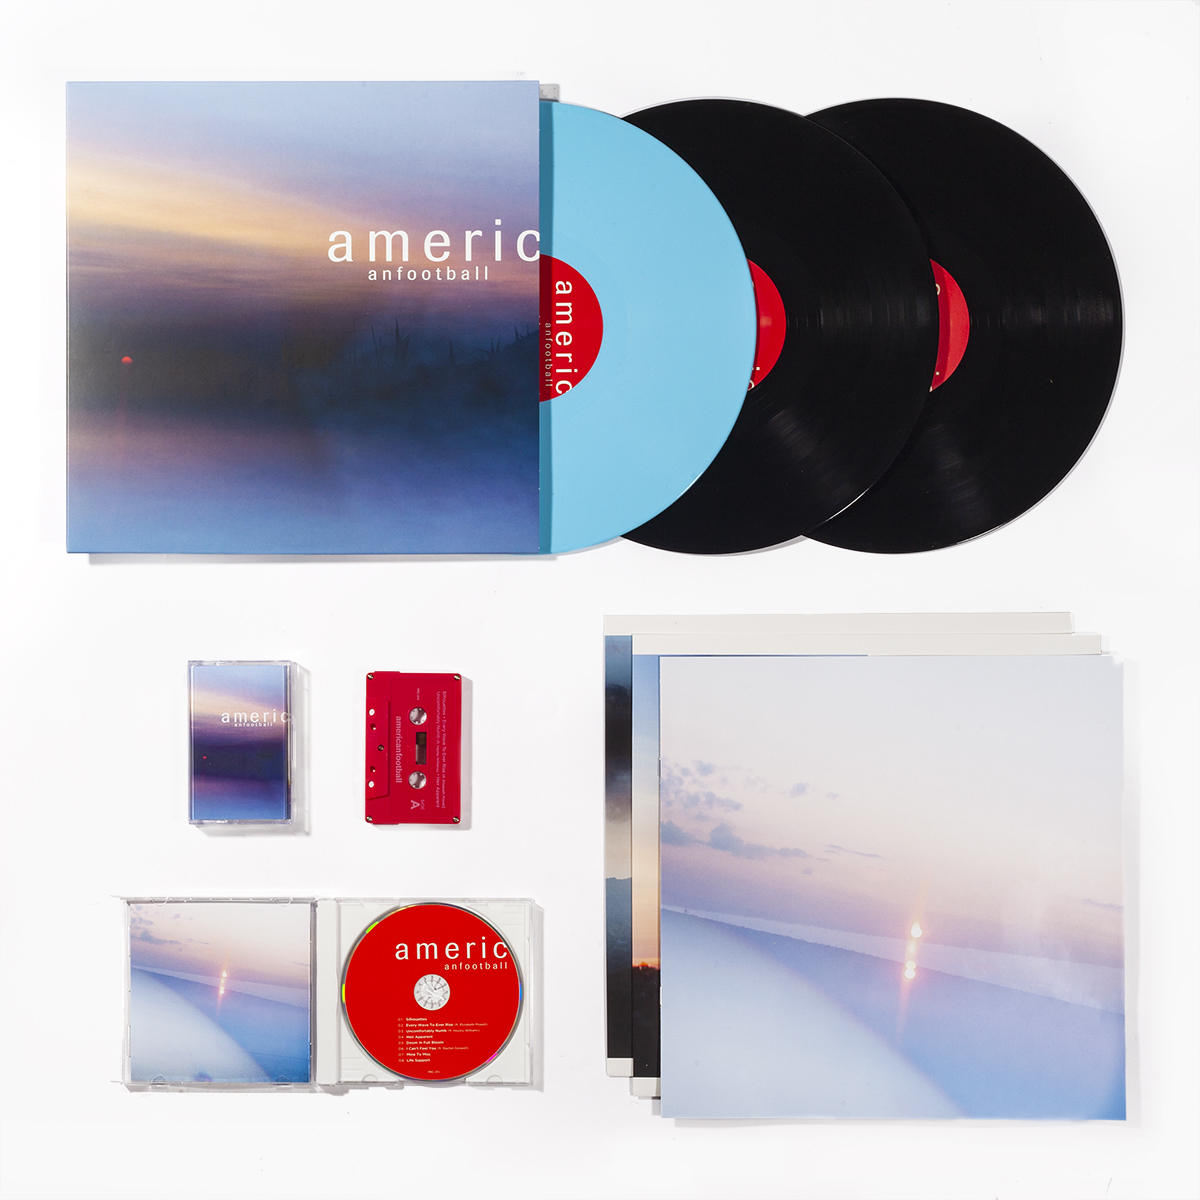 LP3 All Formats with Retail_1200.jpg